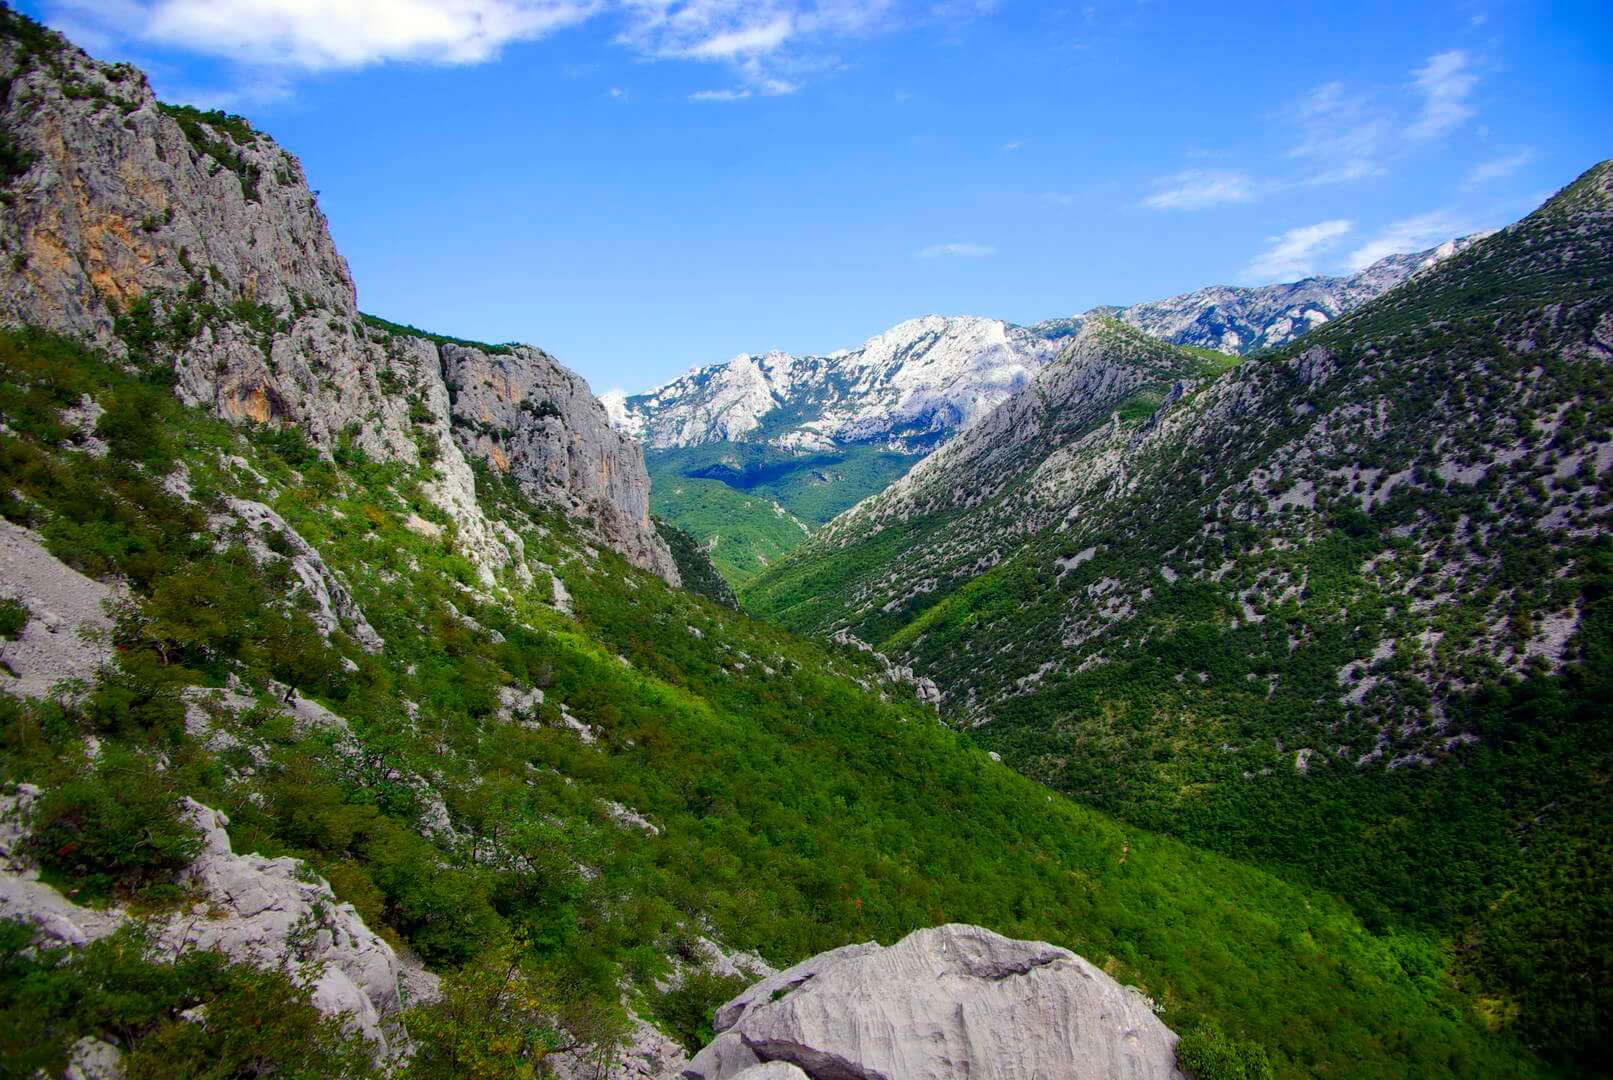 Canyon_of_Paklenica (1)